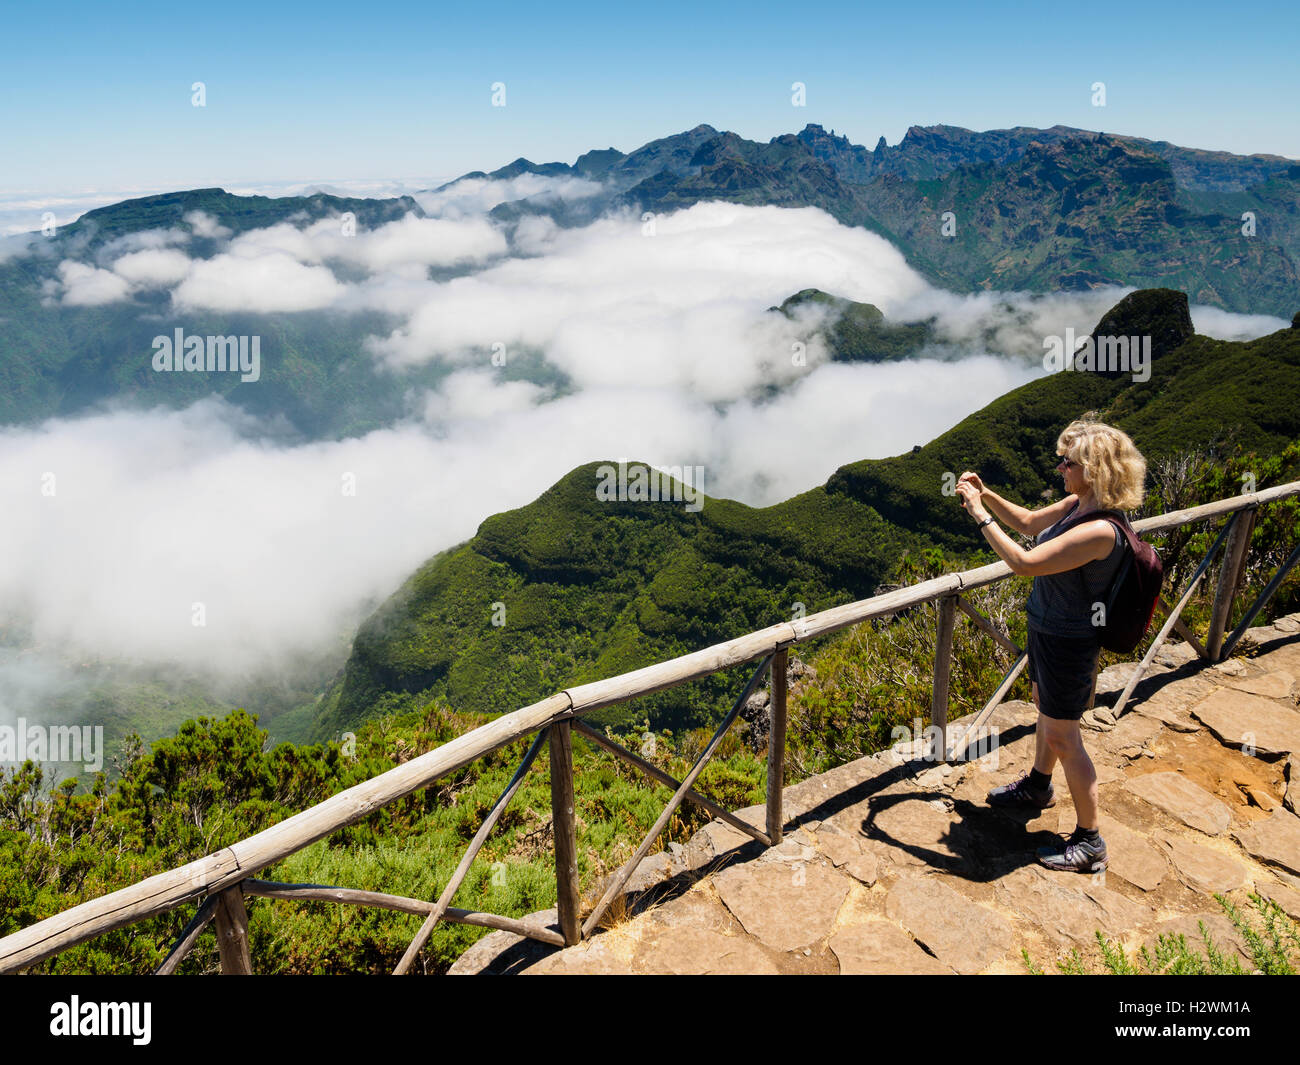 Madeira: A tourist takes a snapshot with her mobile phone from the Bica da Cana mountain, direction Sao Vicente - Stock Image